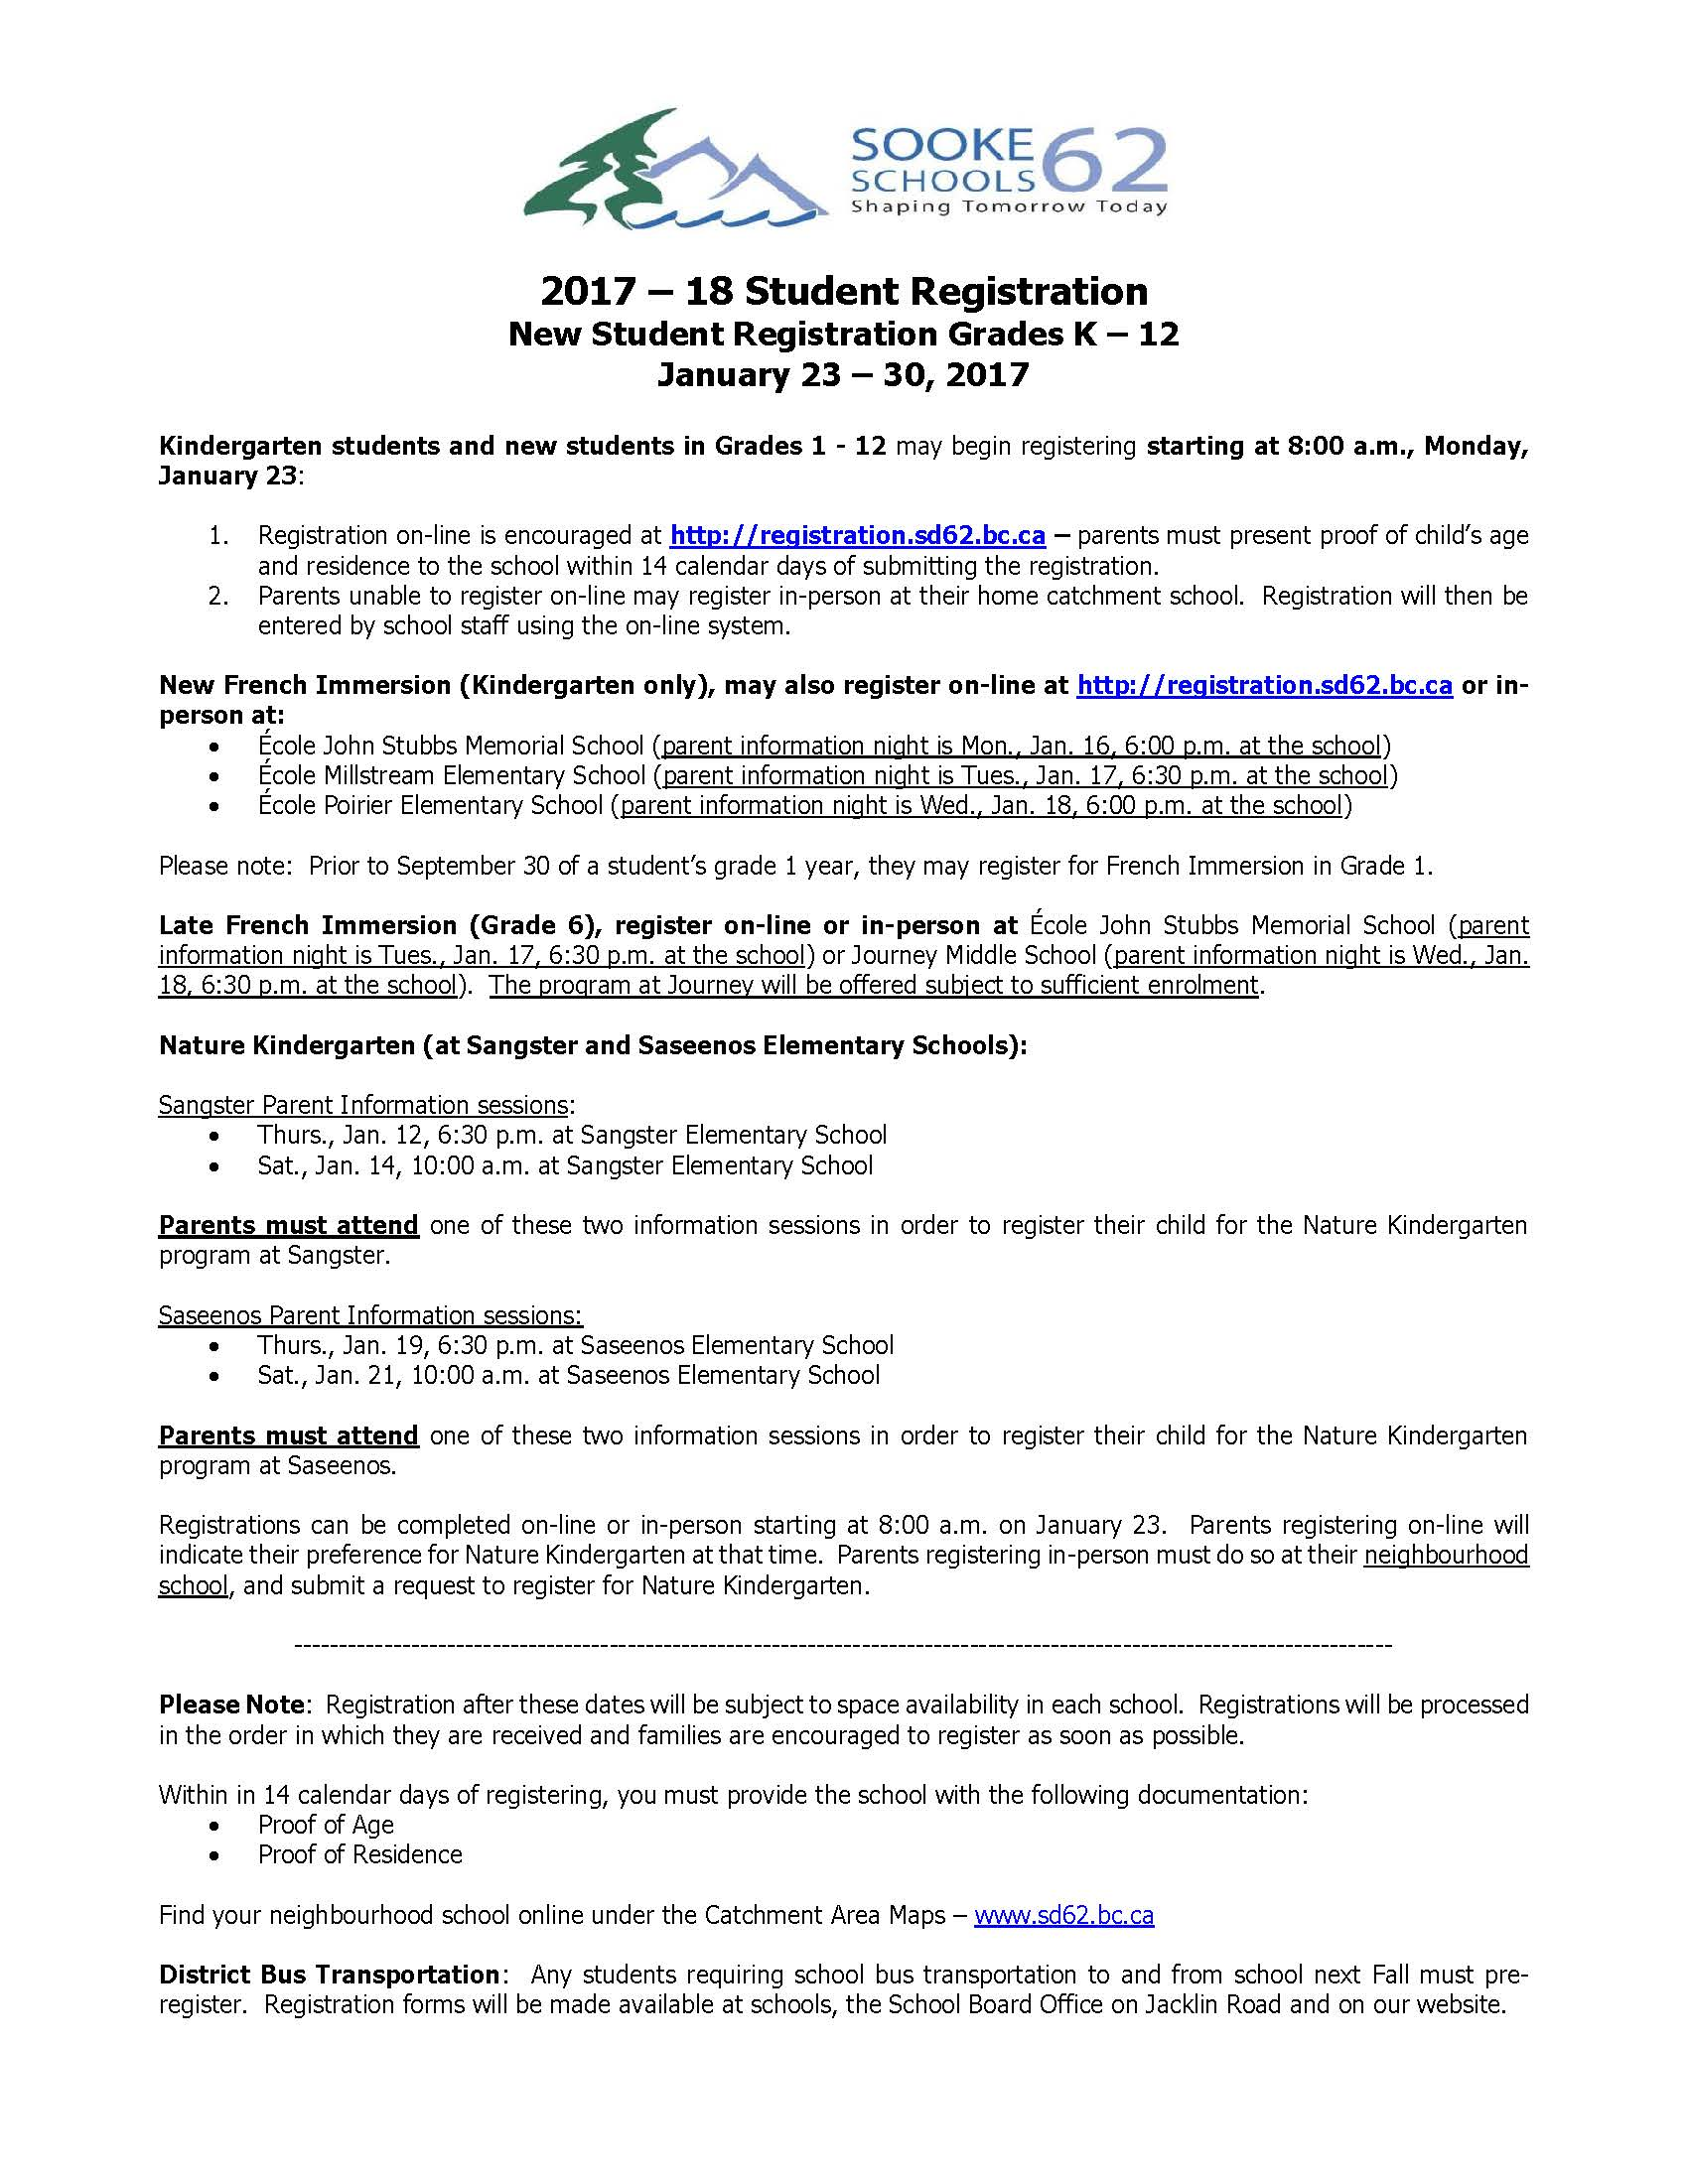 2017-18-new-student-registration-notice-january-2017